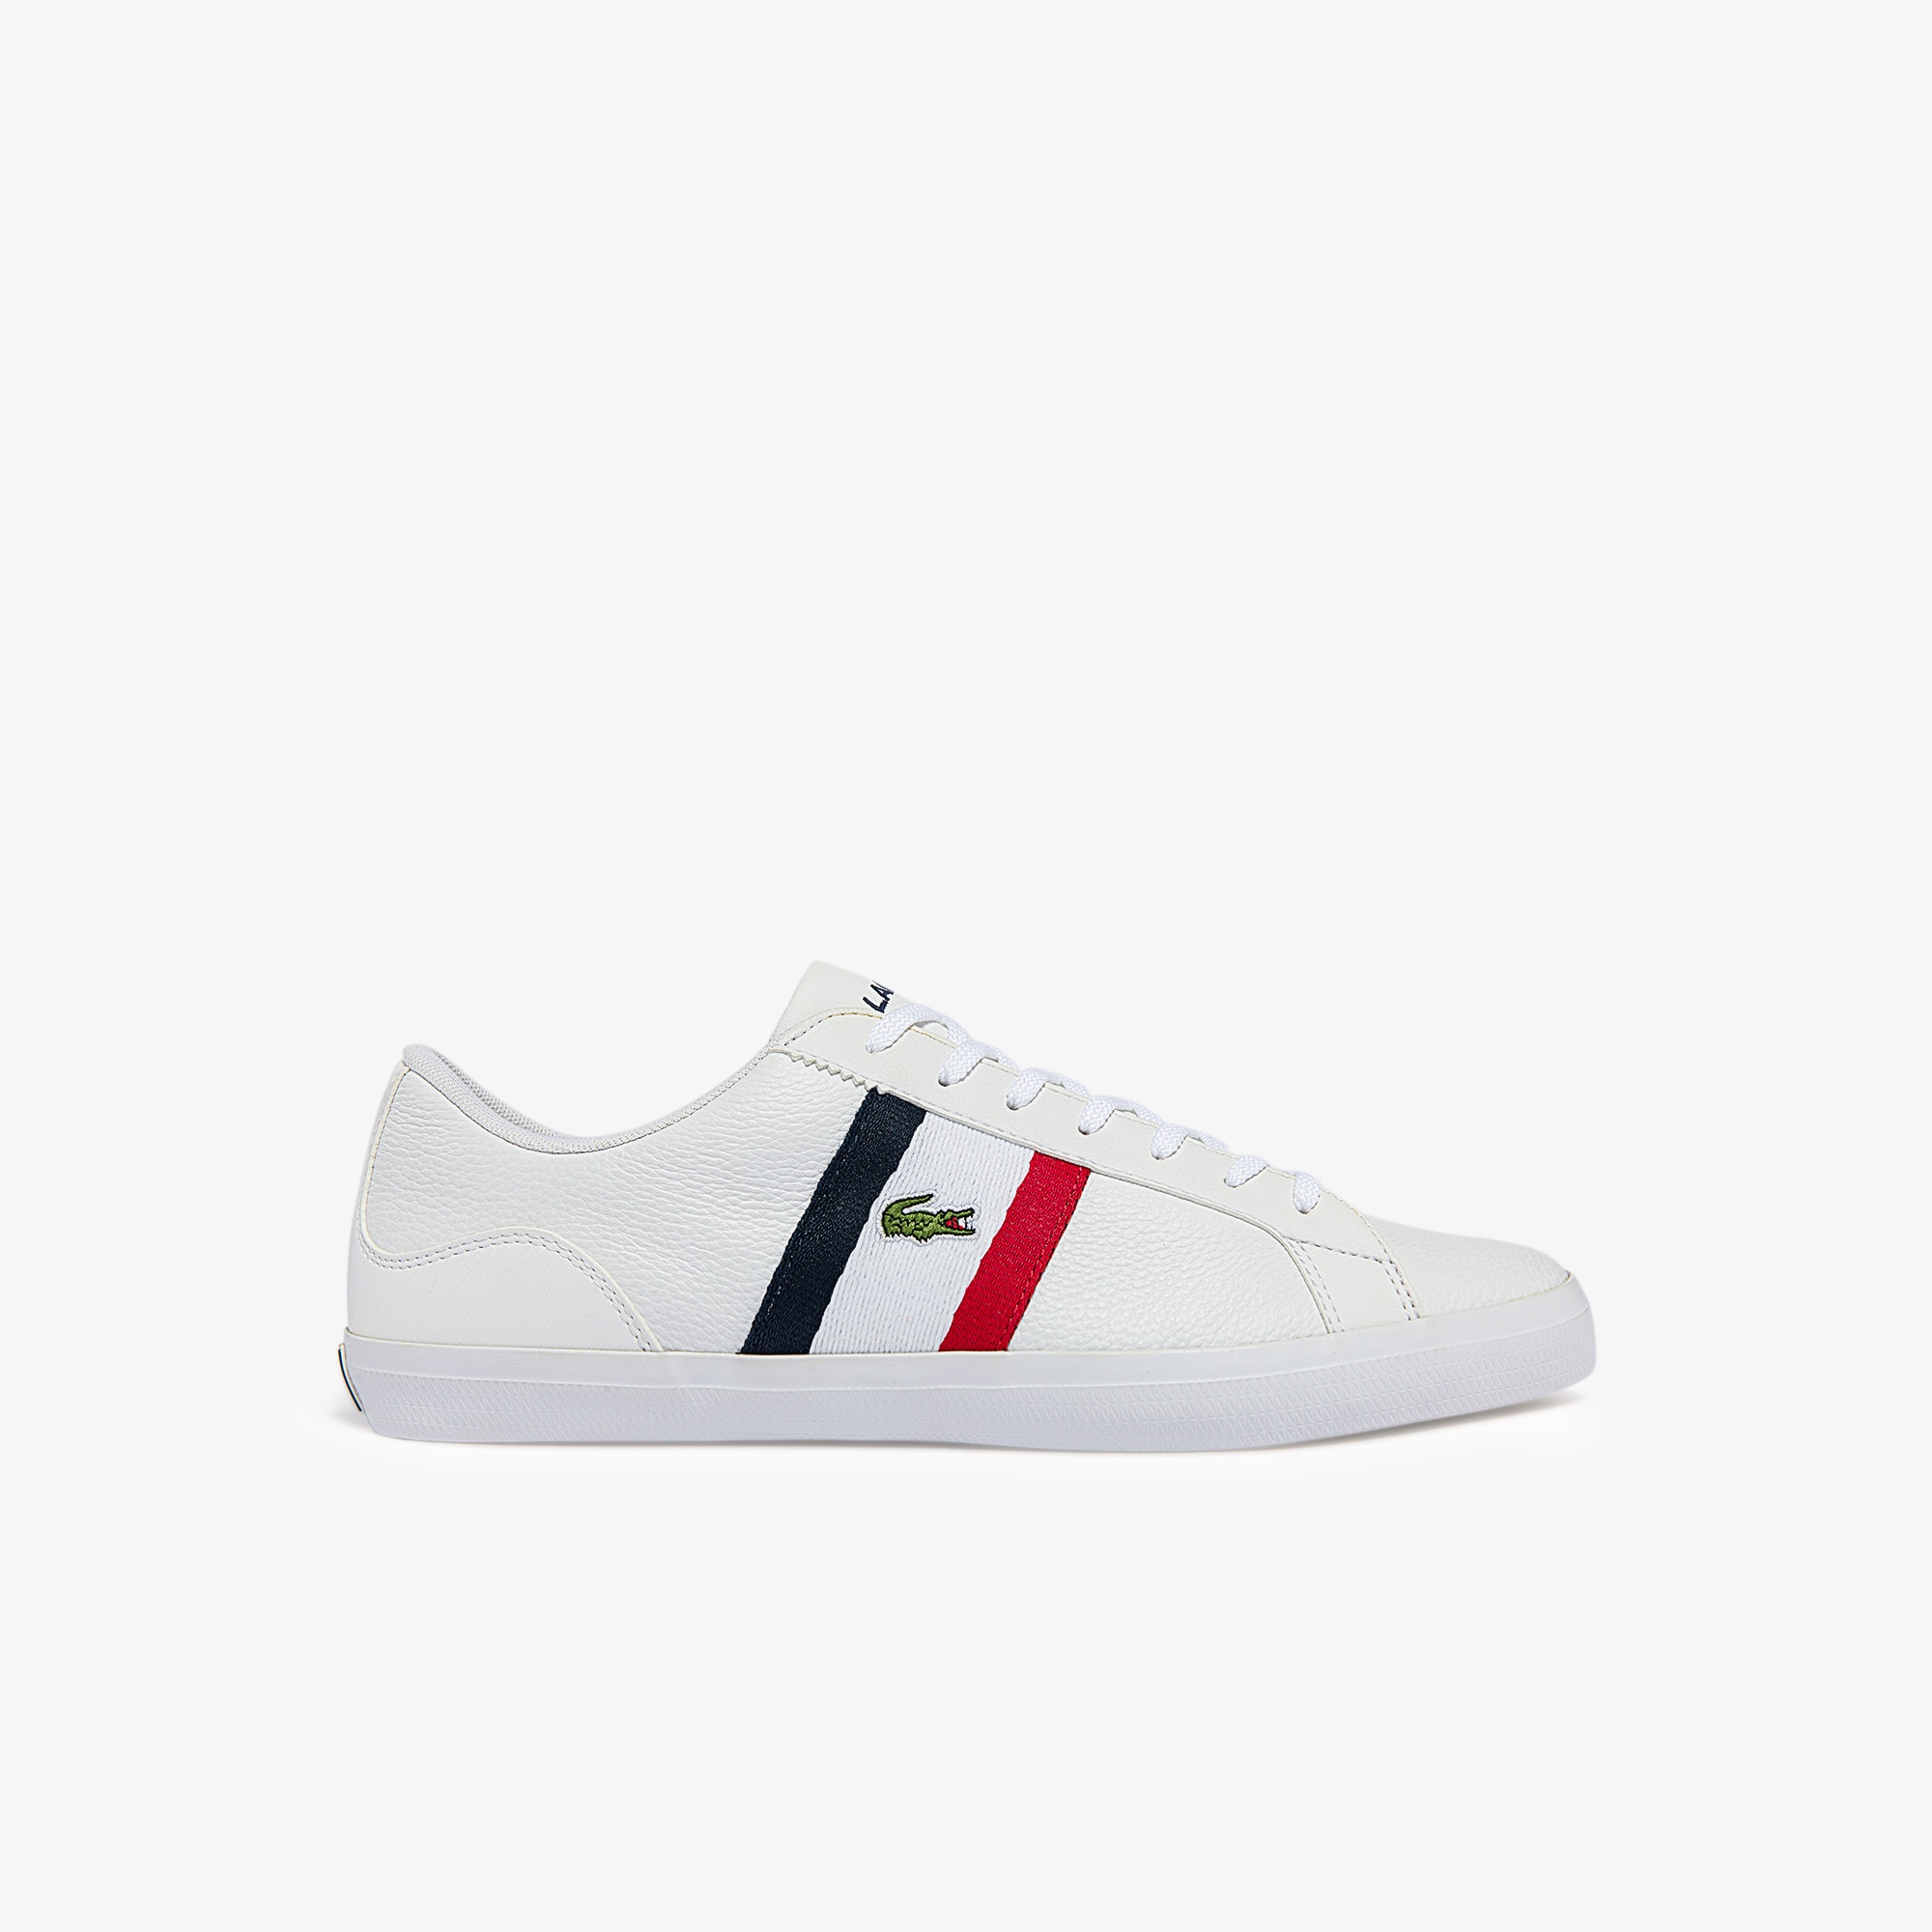 Sneakers homme, baskets et chaussures homme   LACOSTE 214f6b4ca0b1